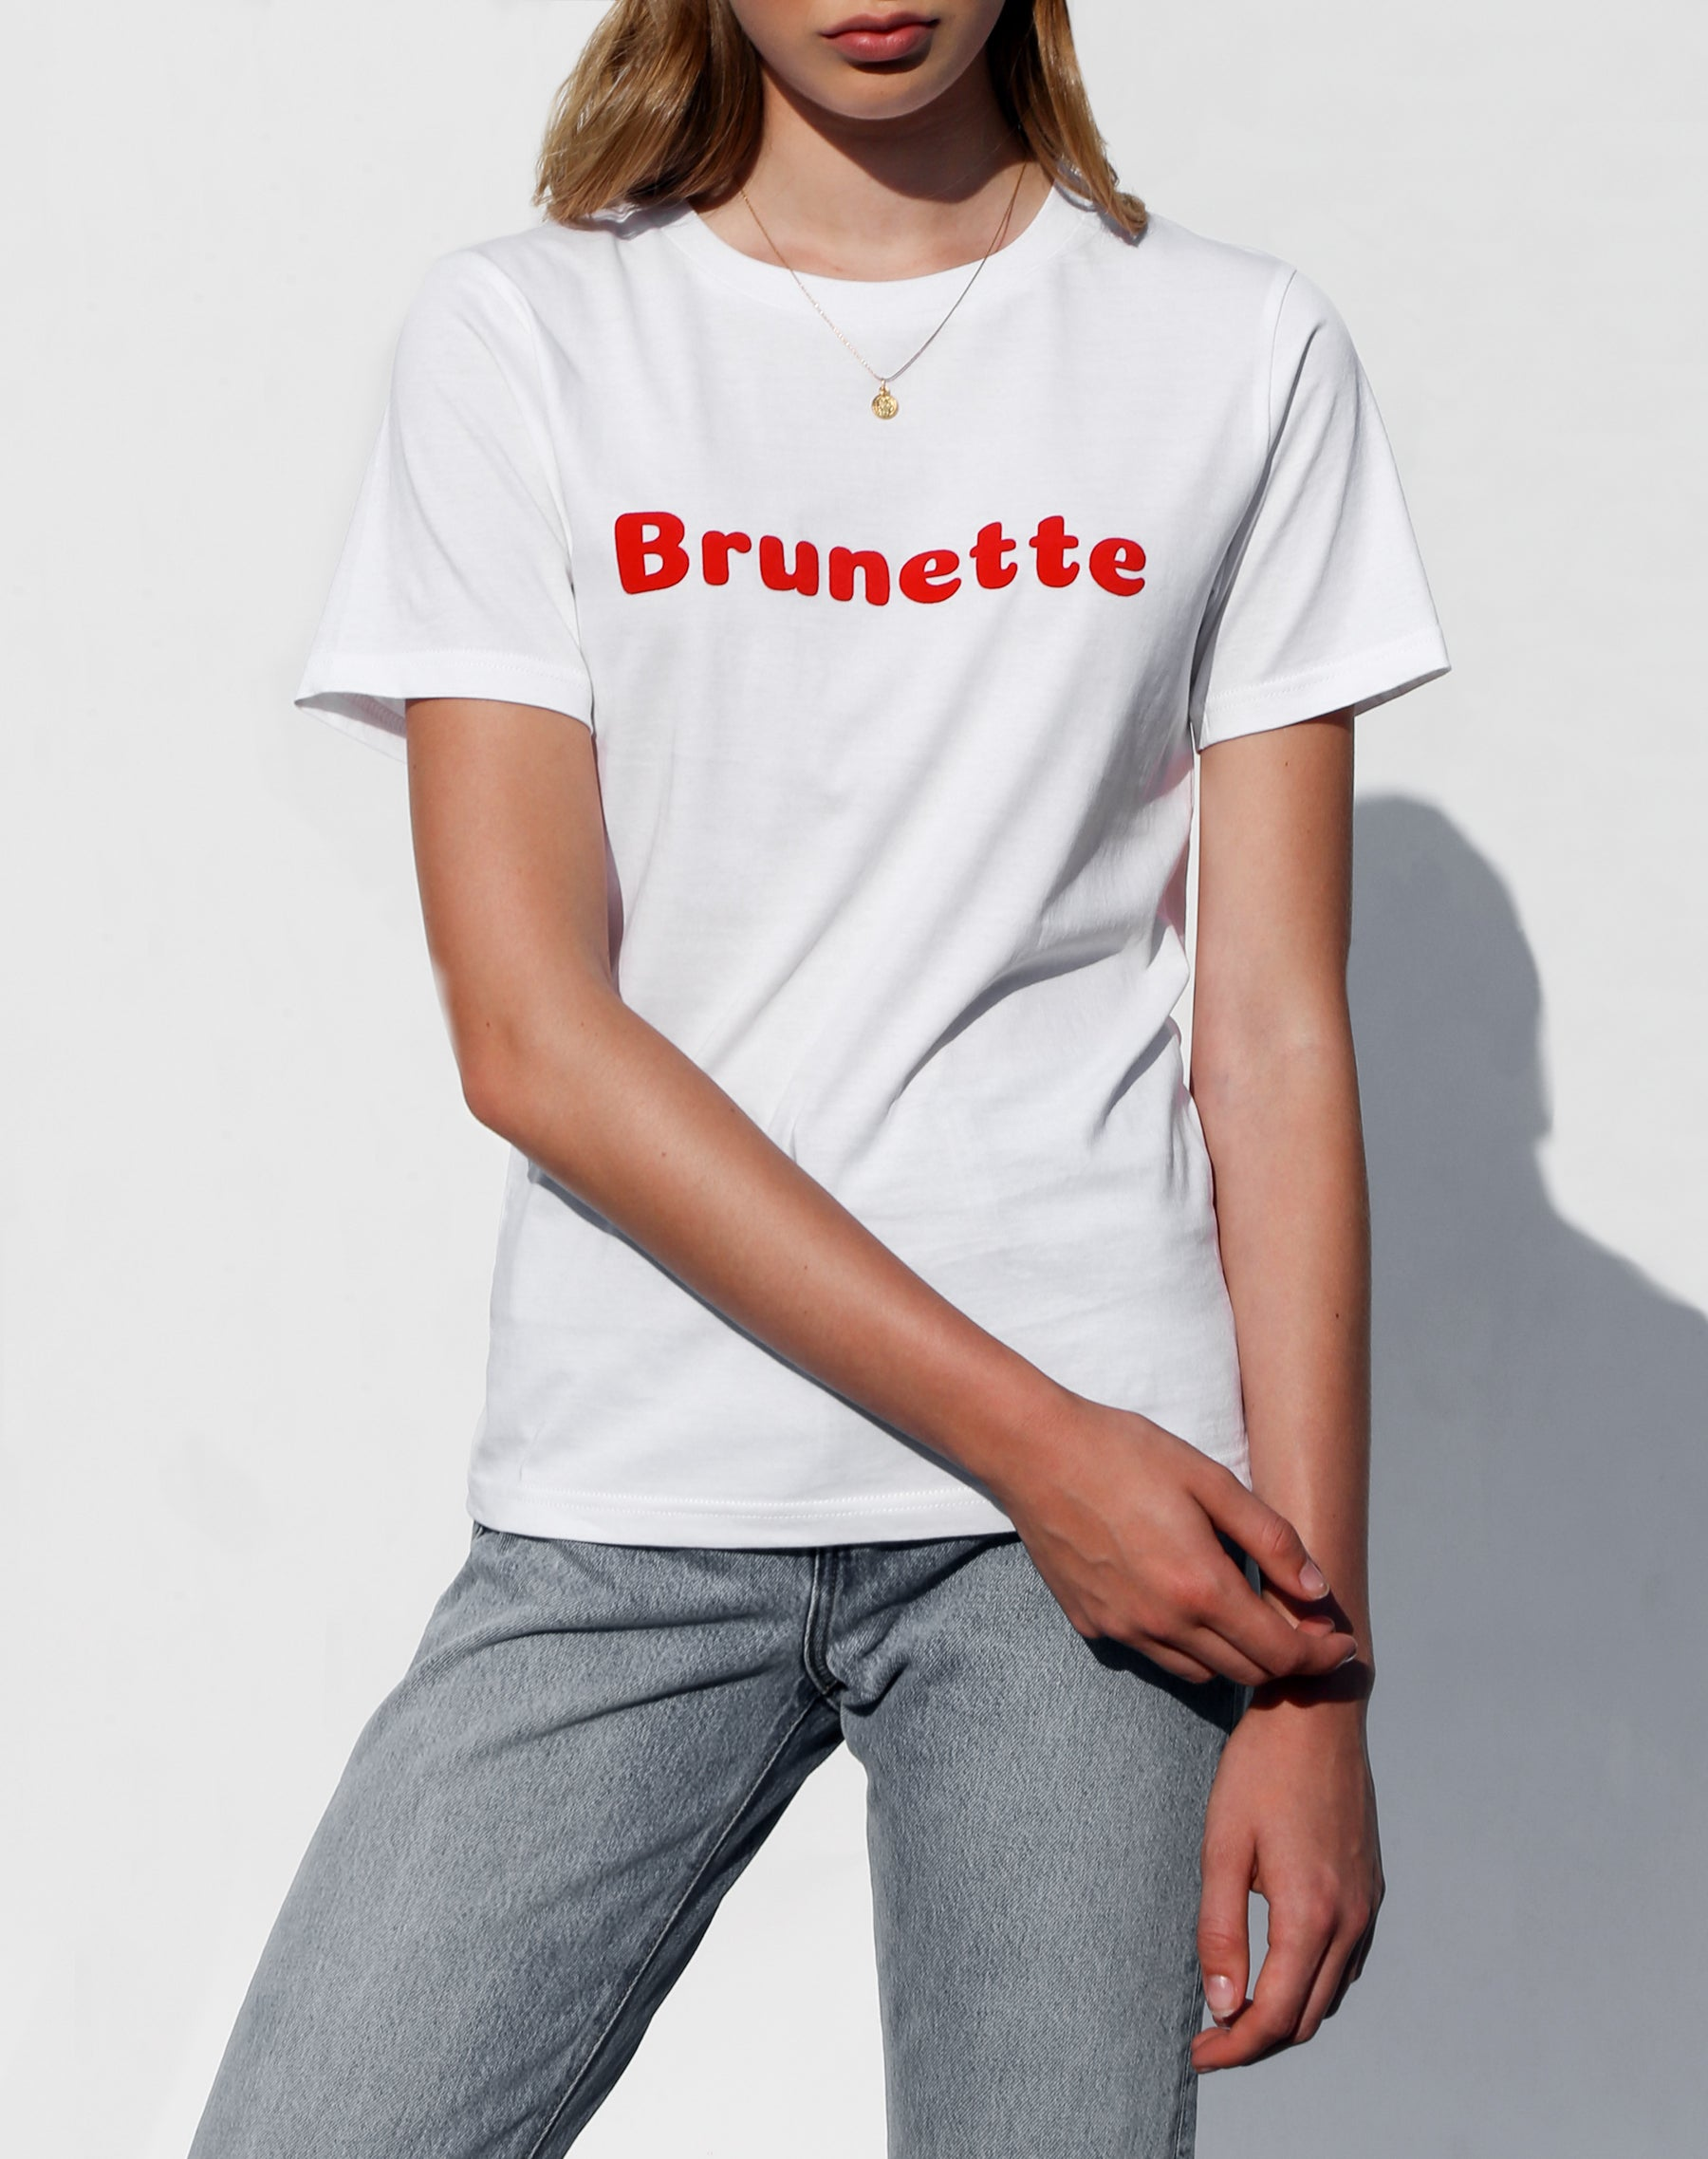 Photo of the Brunette classic crew neck tee in white for the Canada Day collection by Brunette the Label.